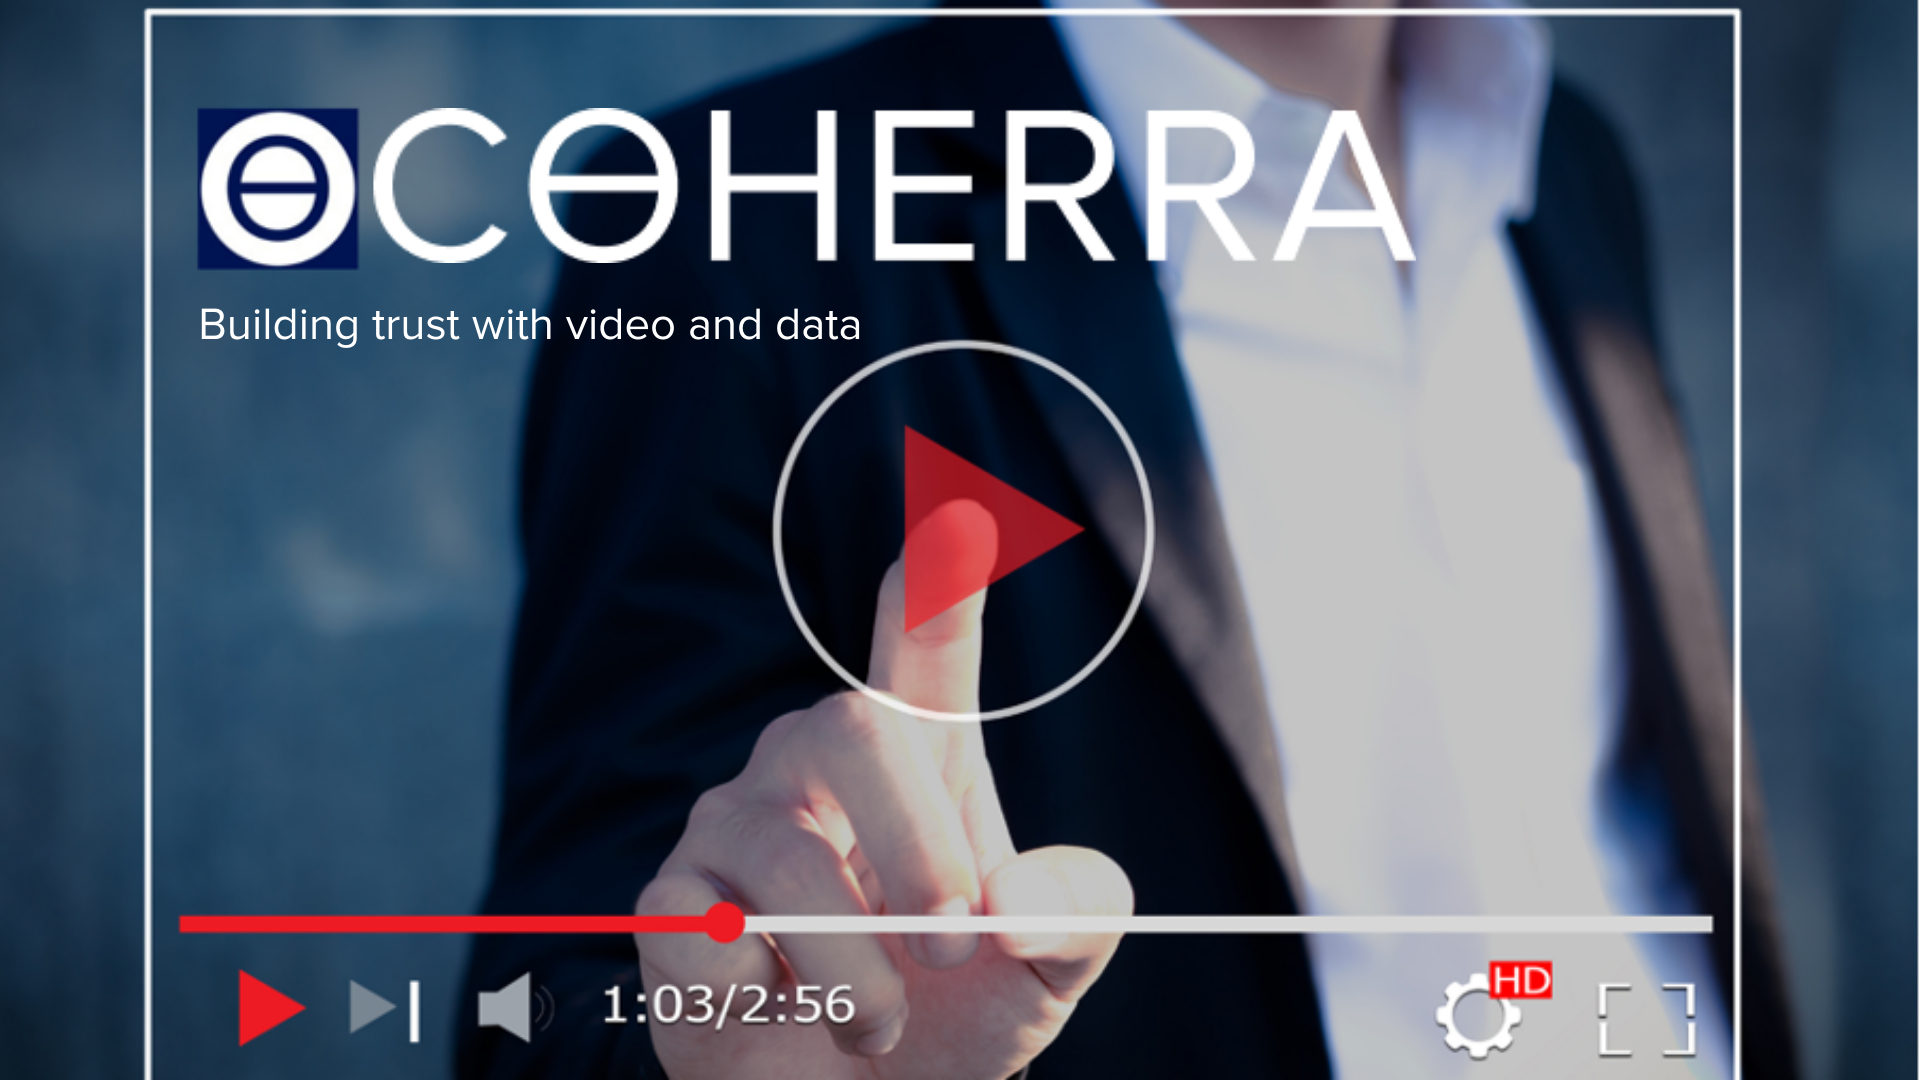 Building trust with video and data